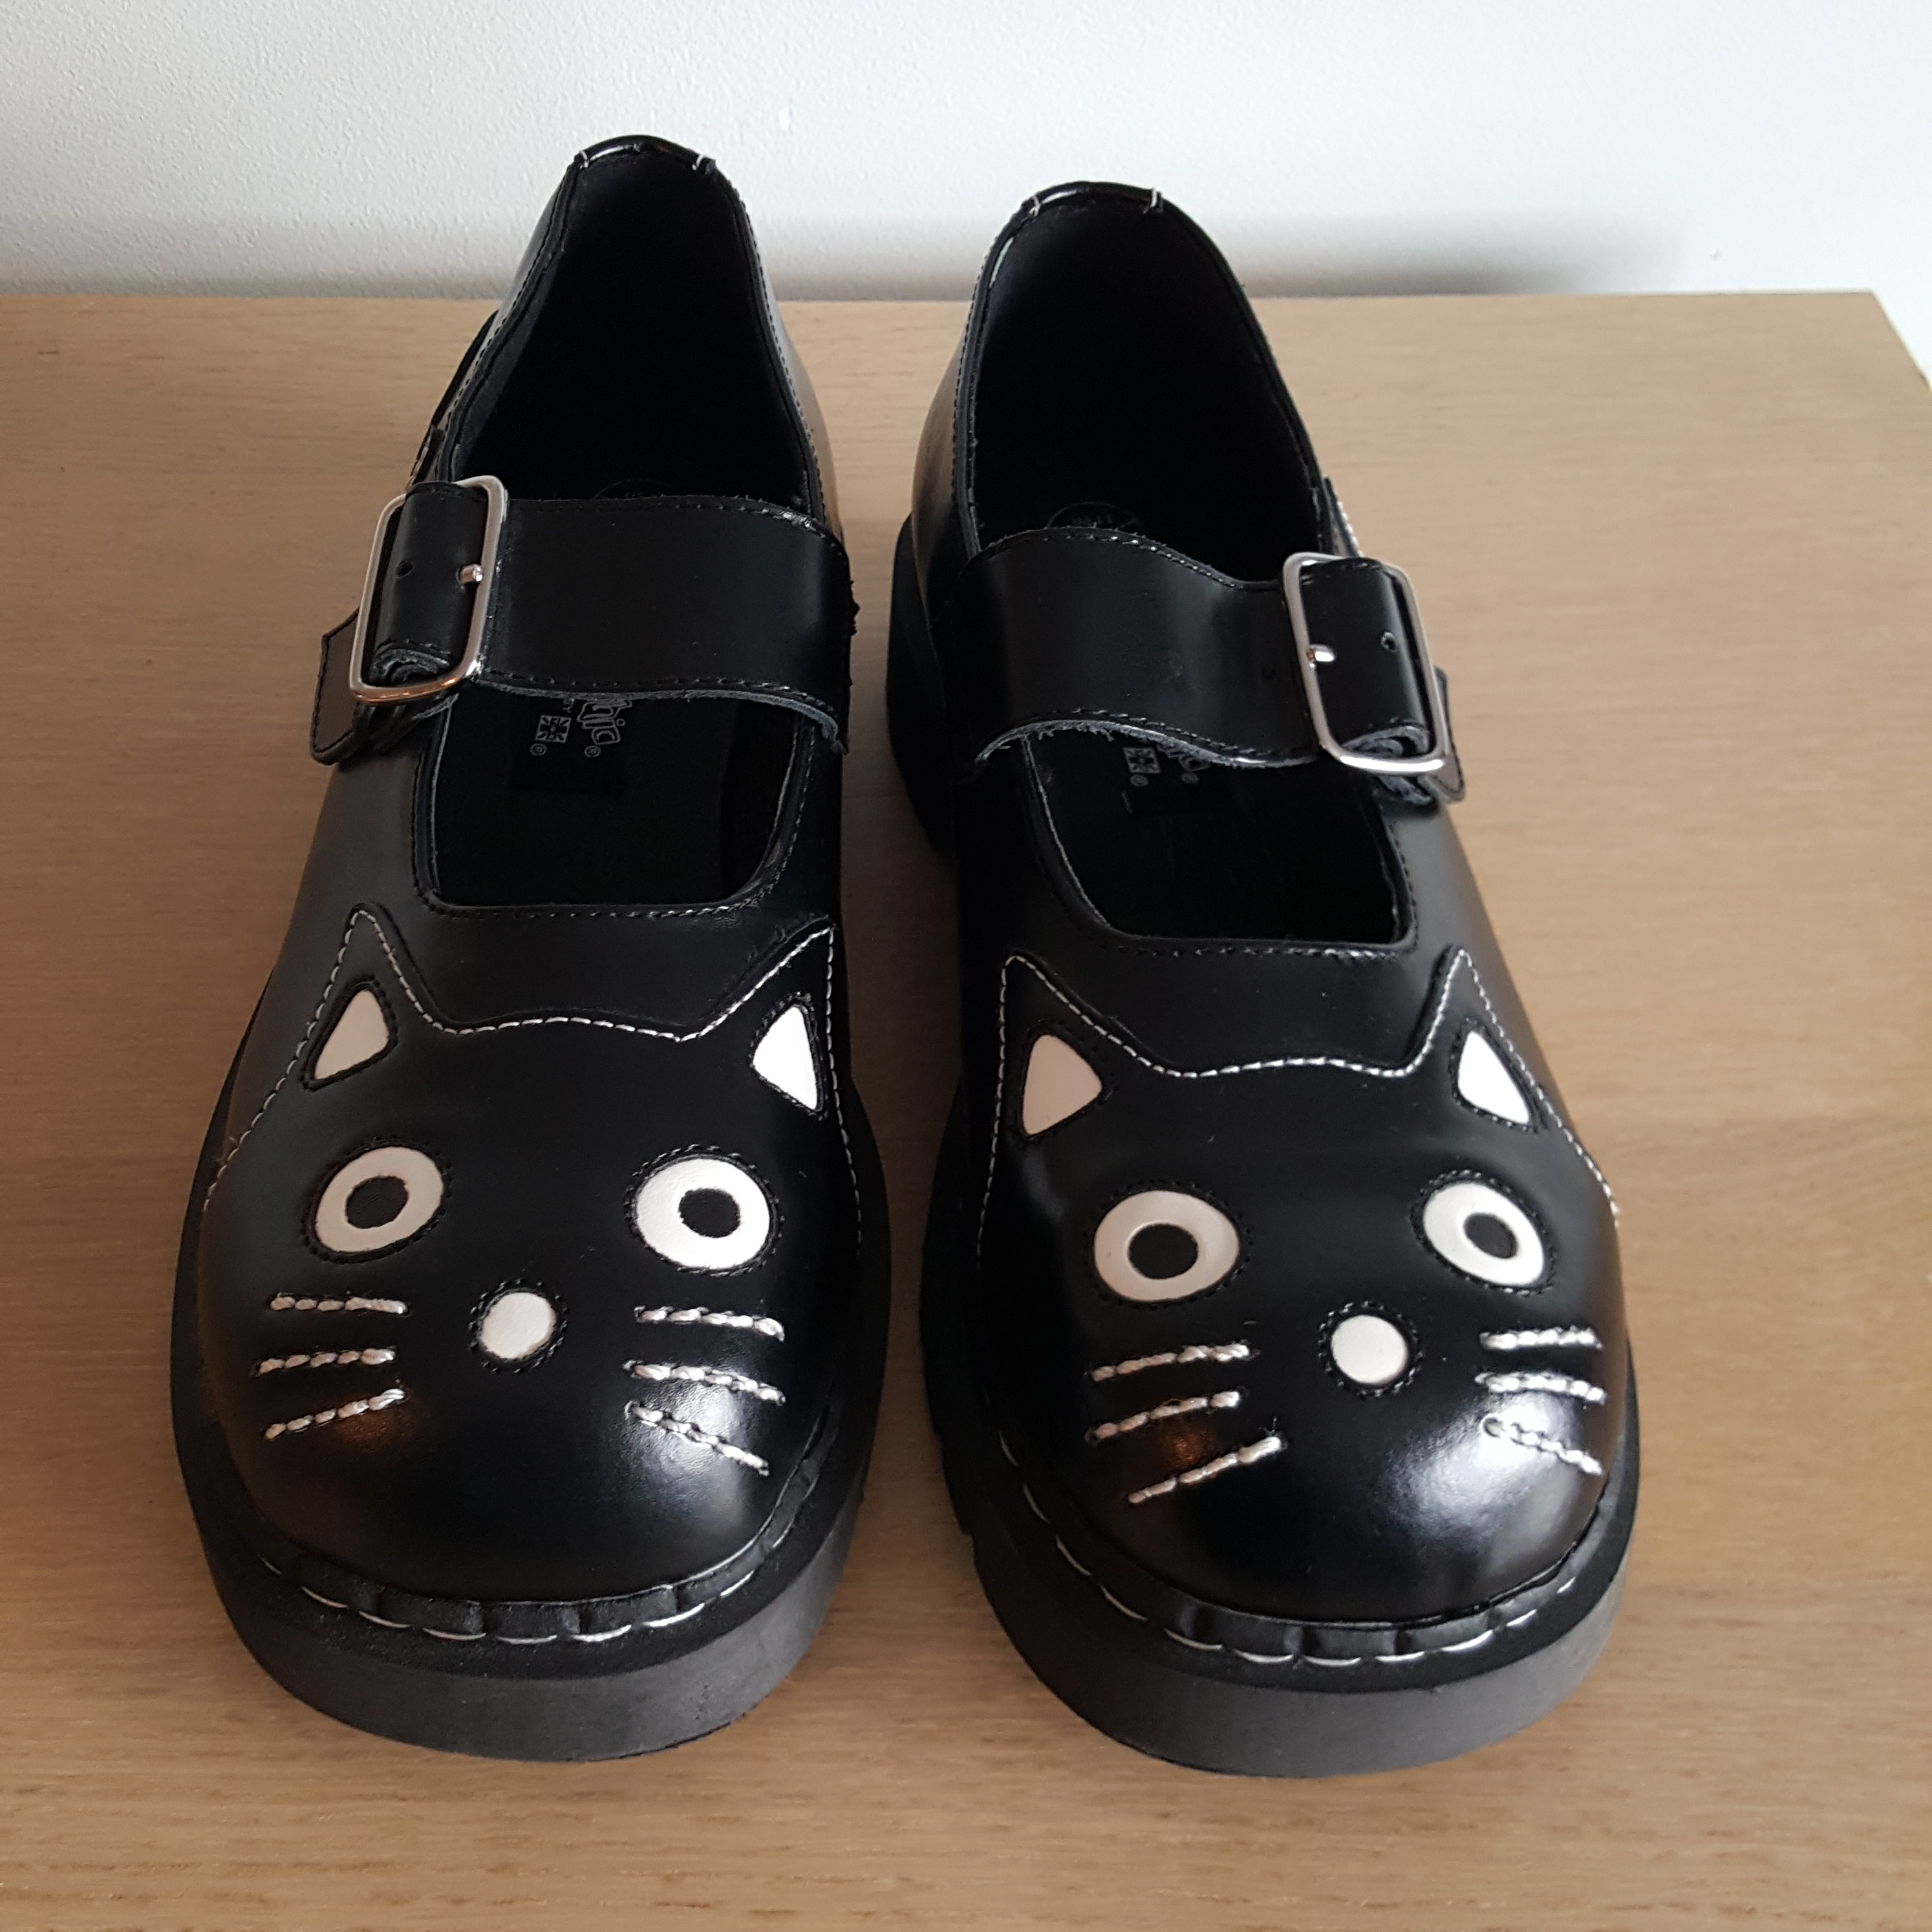 TUK Anarchic cat shoes with original